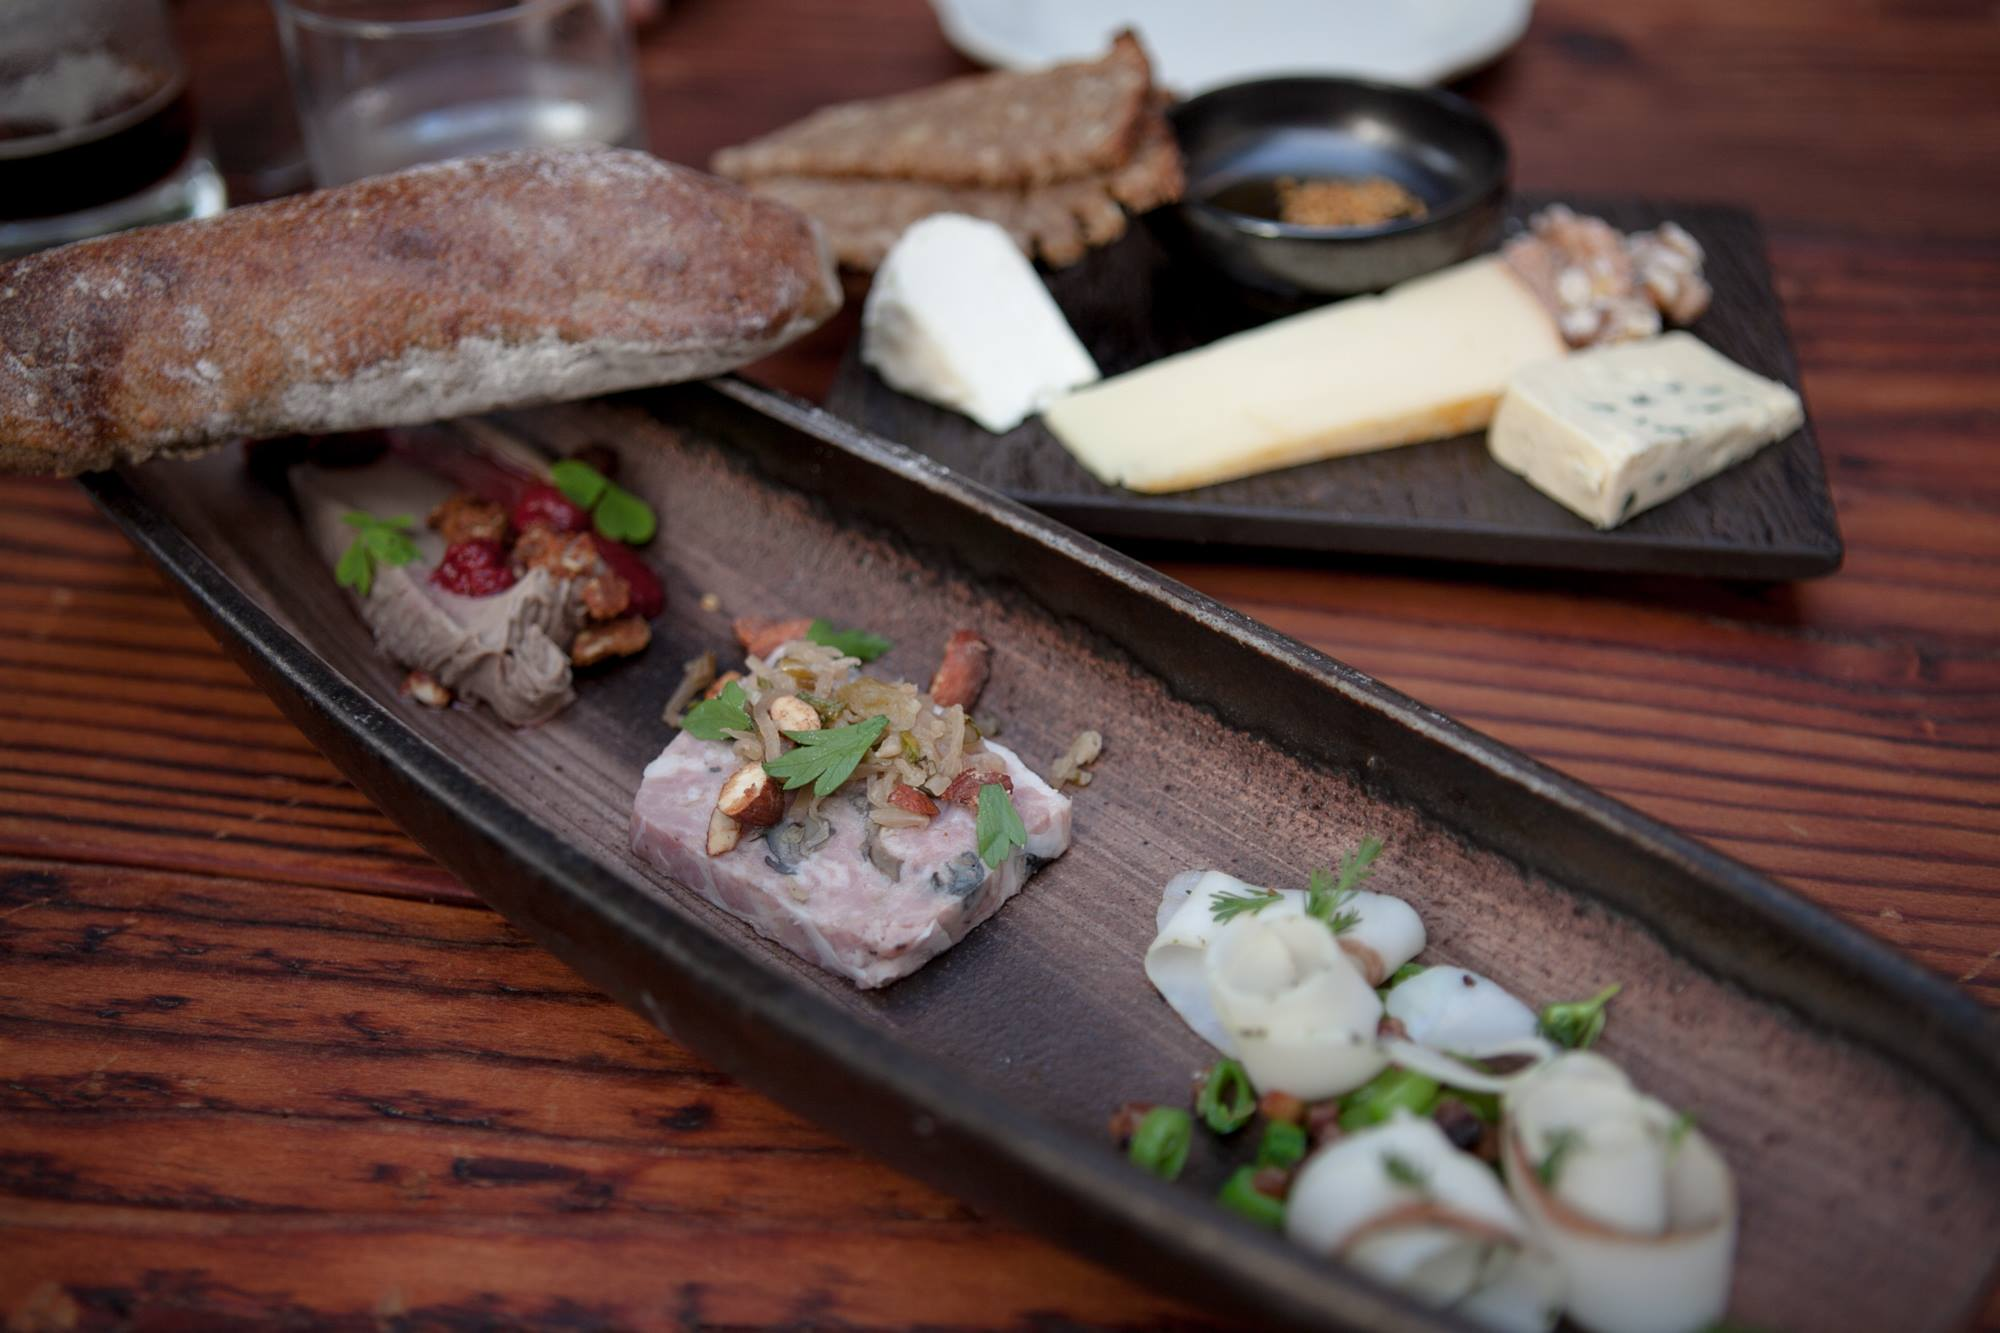 IMAGE: Meat and Cheese Platter